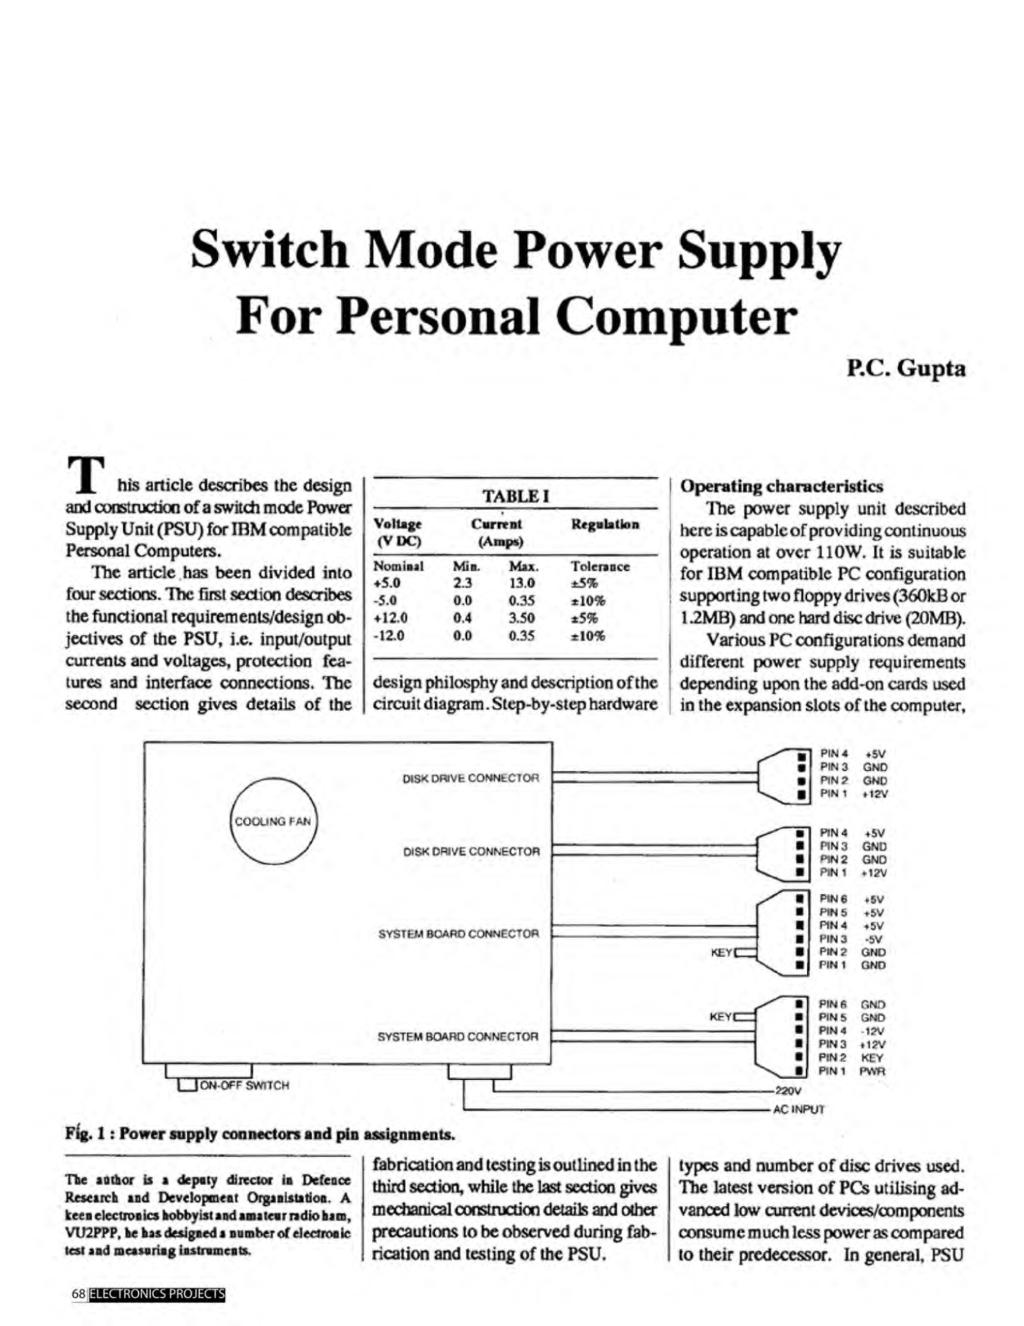 A Compilation Of 102 And Circuit Ideas For Construction Projects Diagram Lm339n Atx Power Supply Schematic Pc I Switch Mode Personal Computer Gupta T His Article Describes The Design